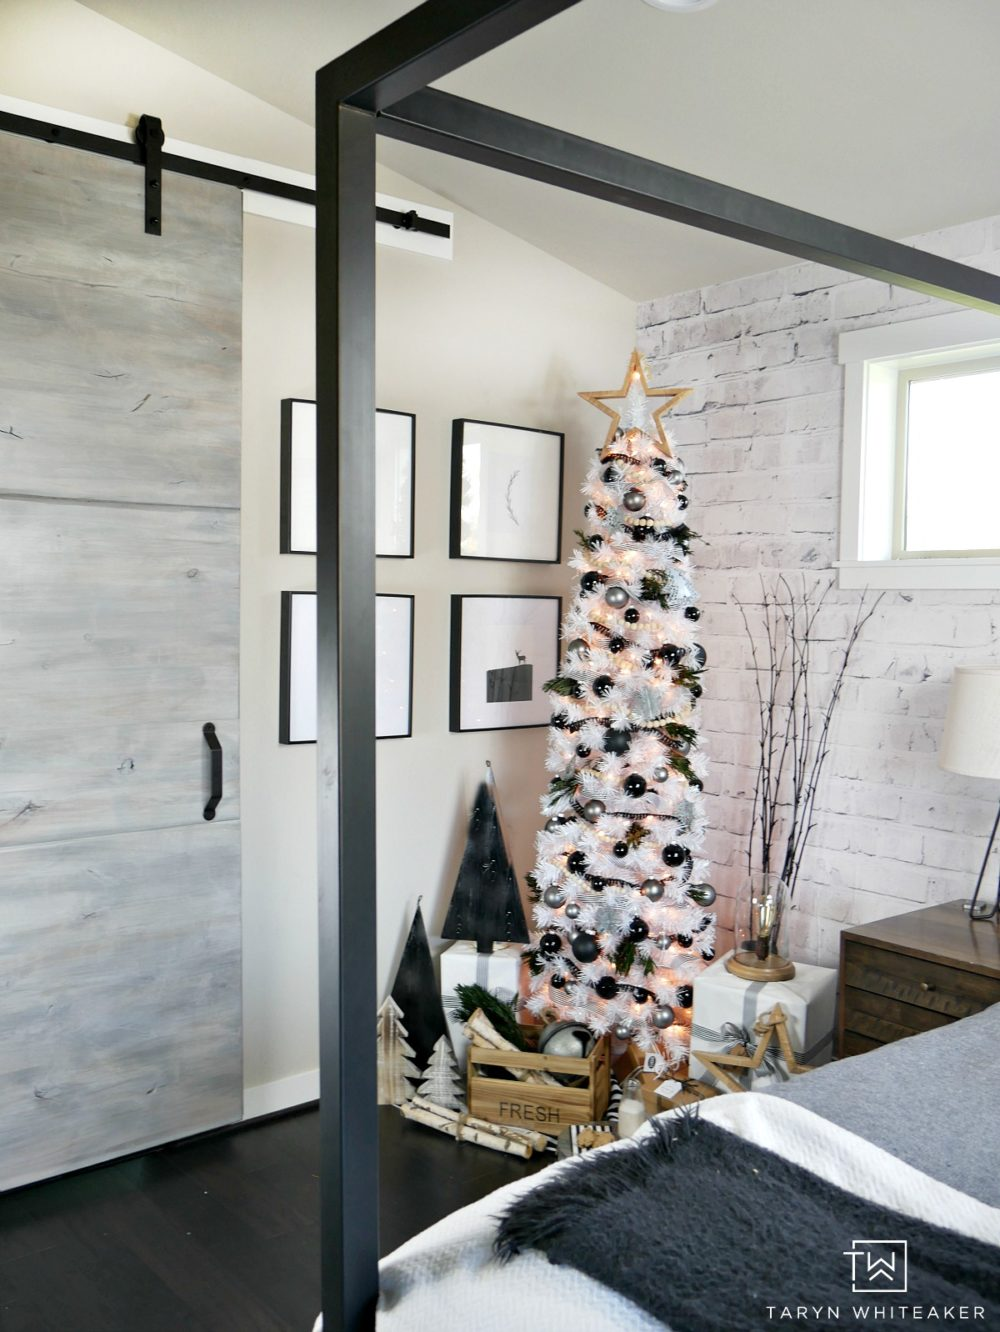 A very unique take on Christmas with this modern black and white Christmas tree!